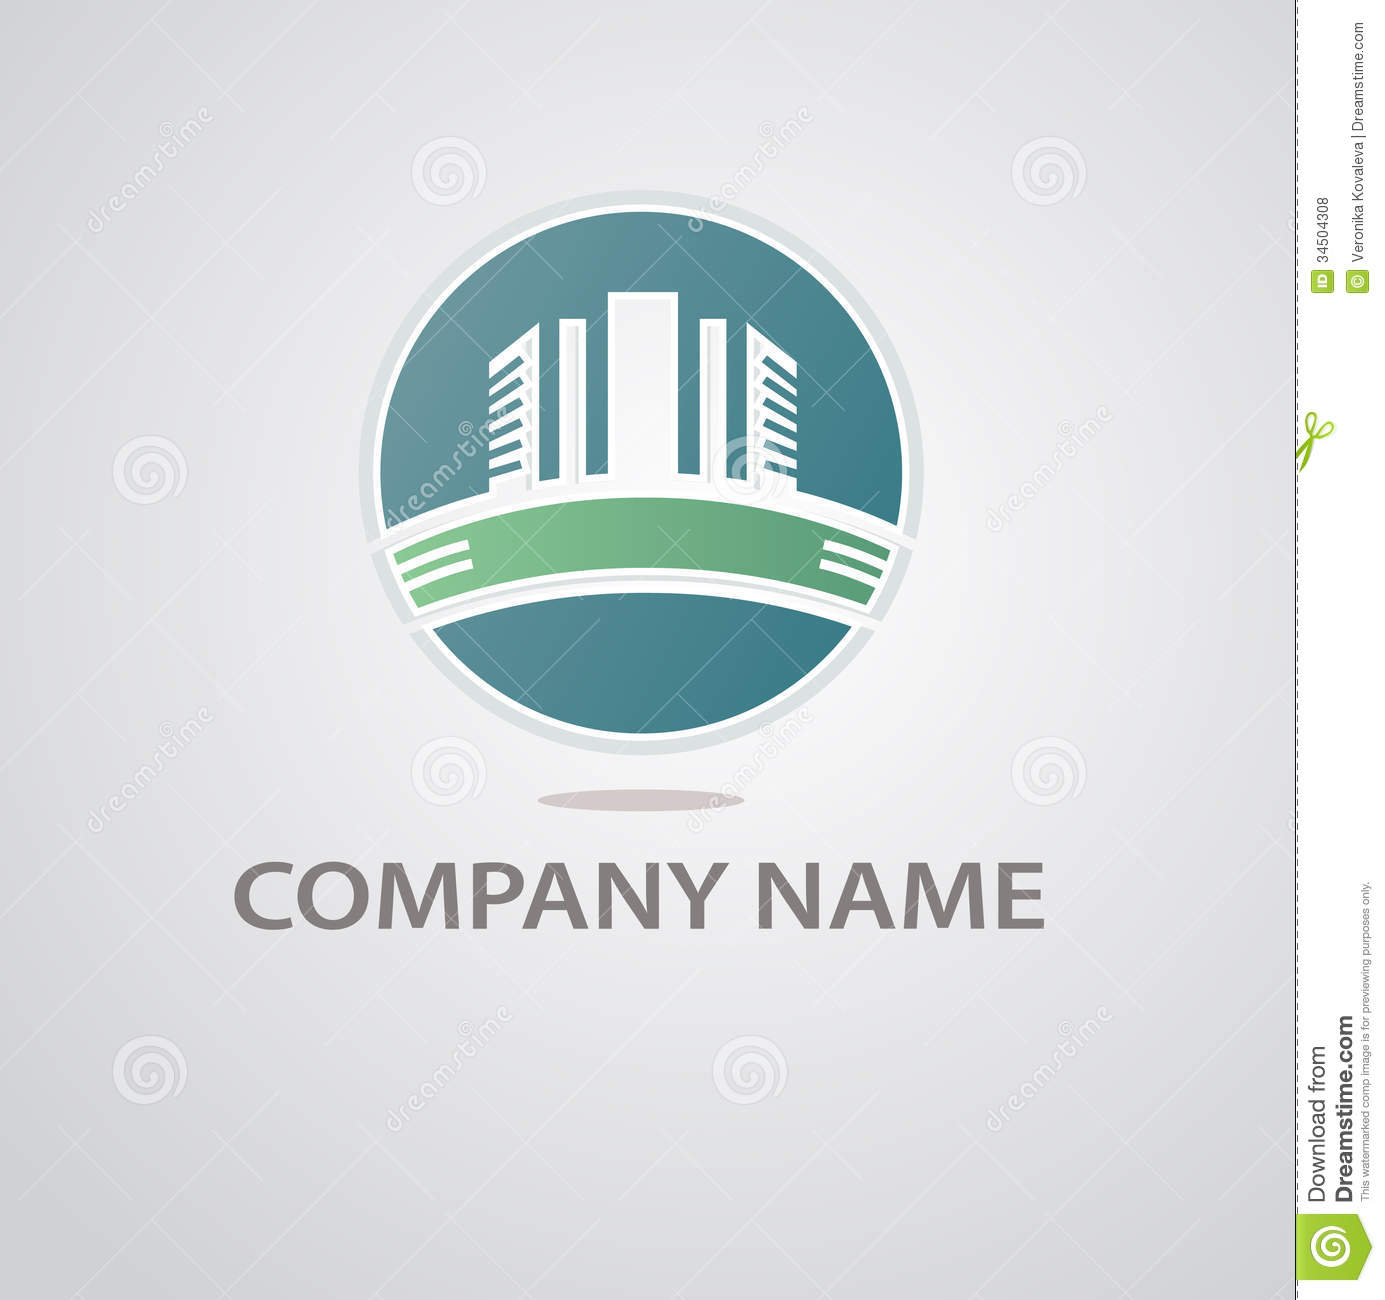 Abstract architecture building silhouette logo royalty for Architecture company